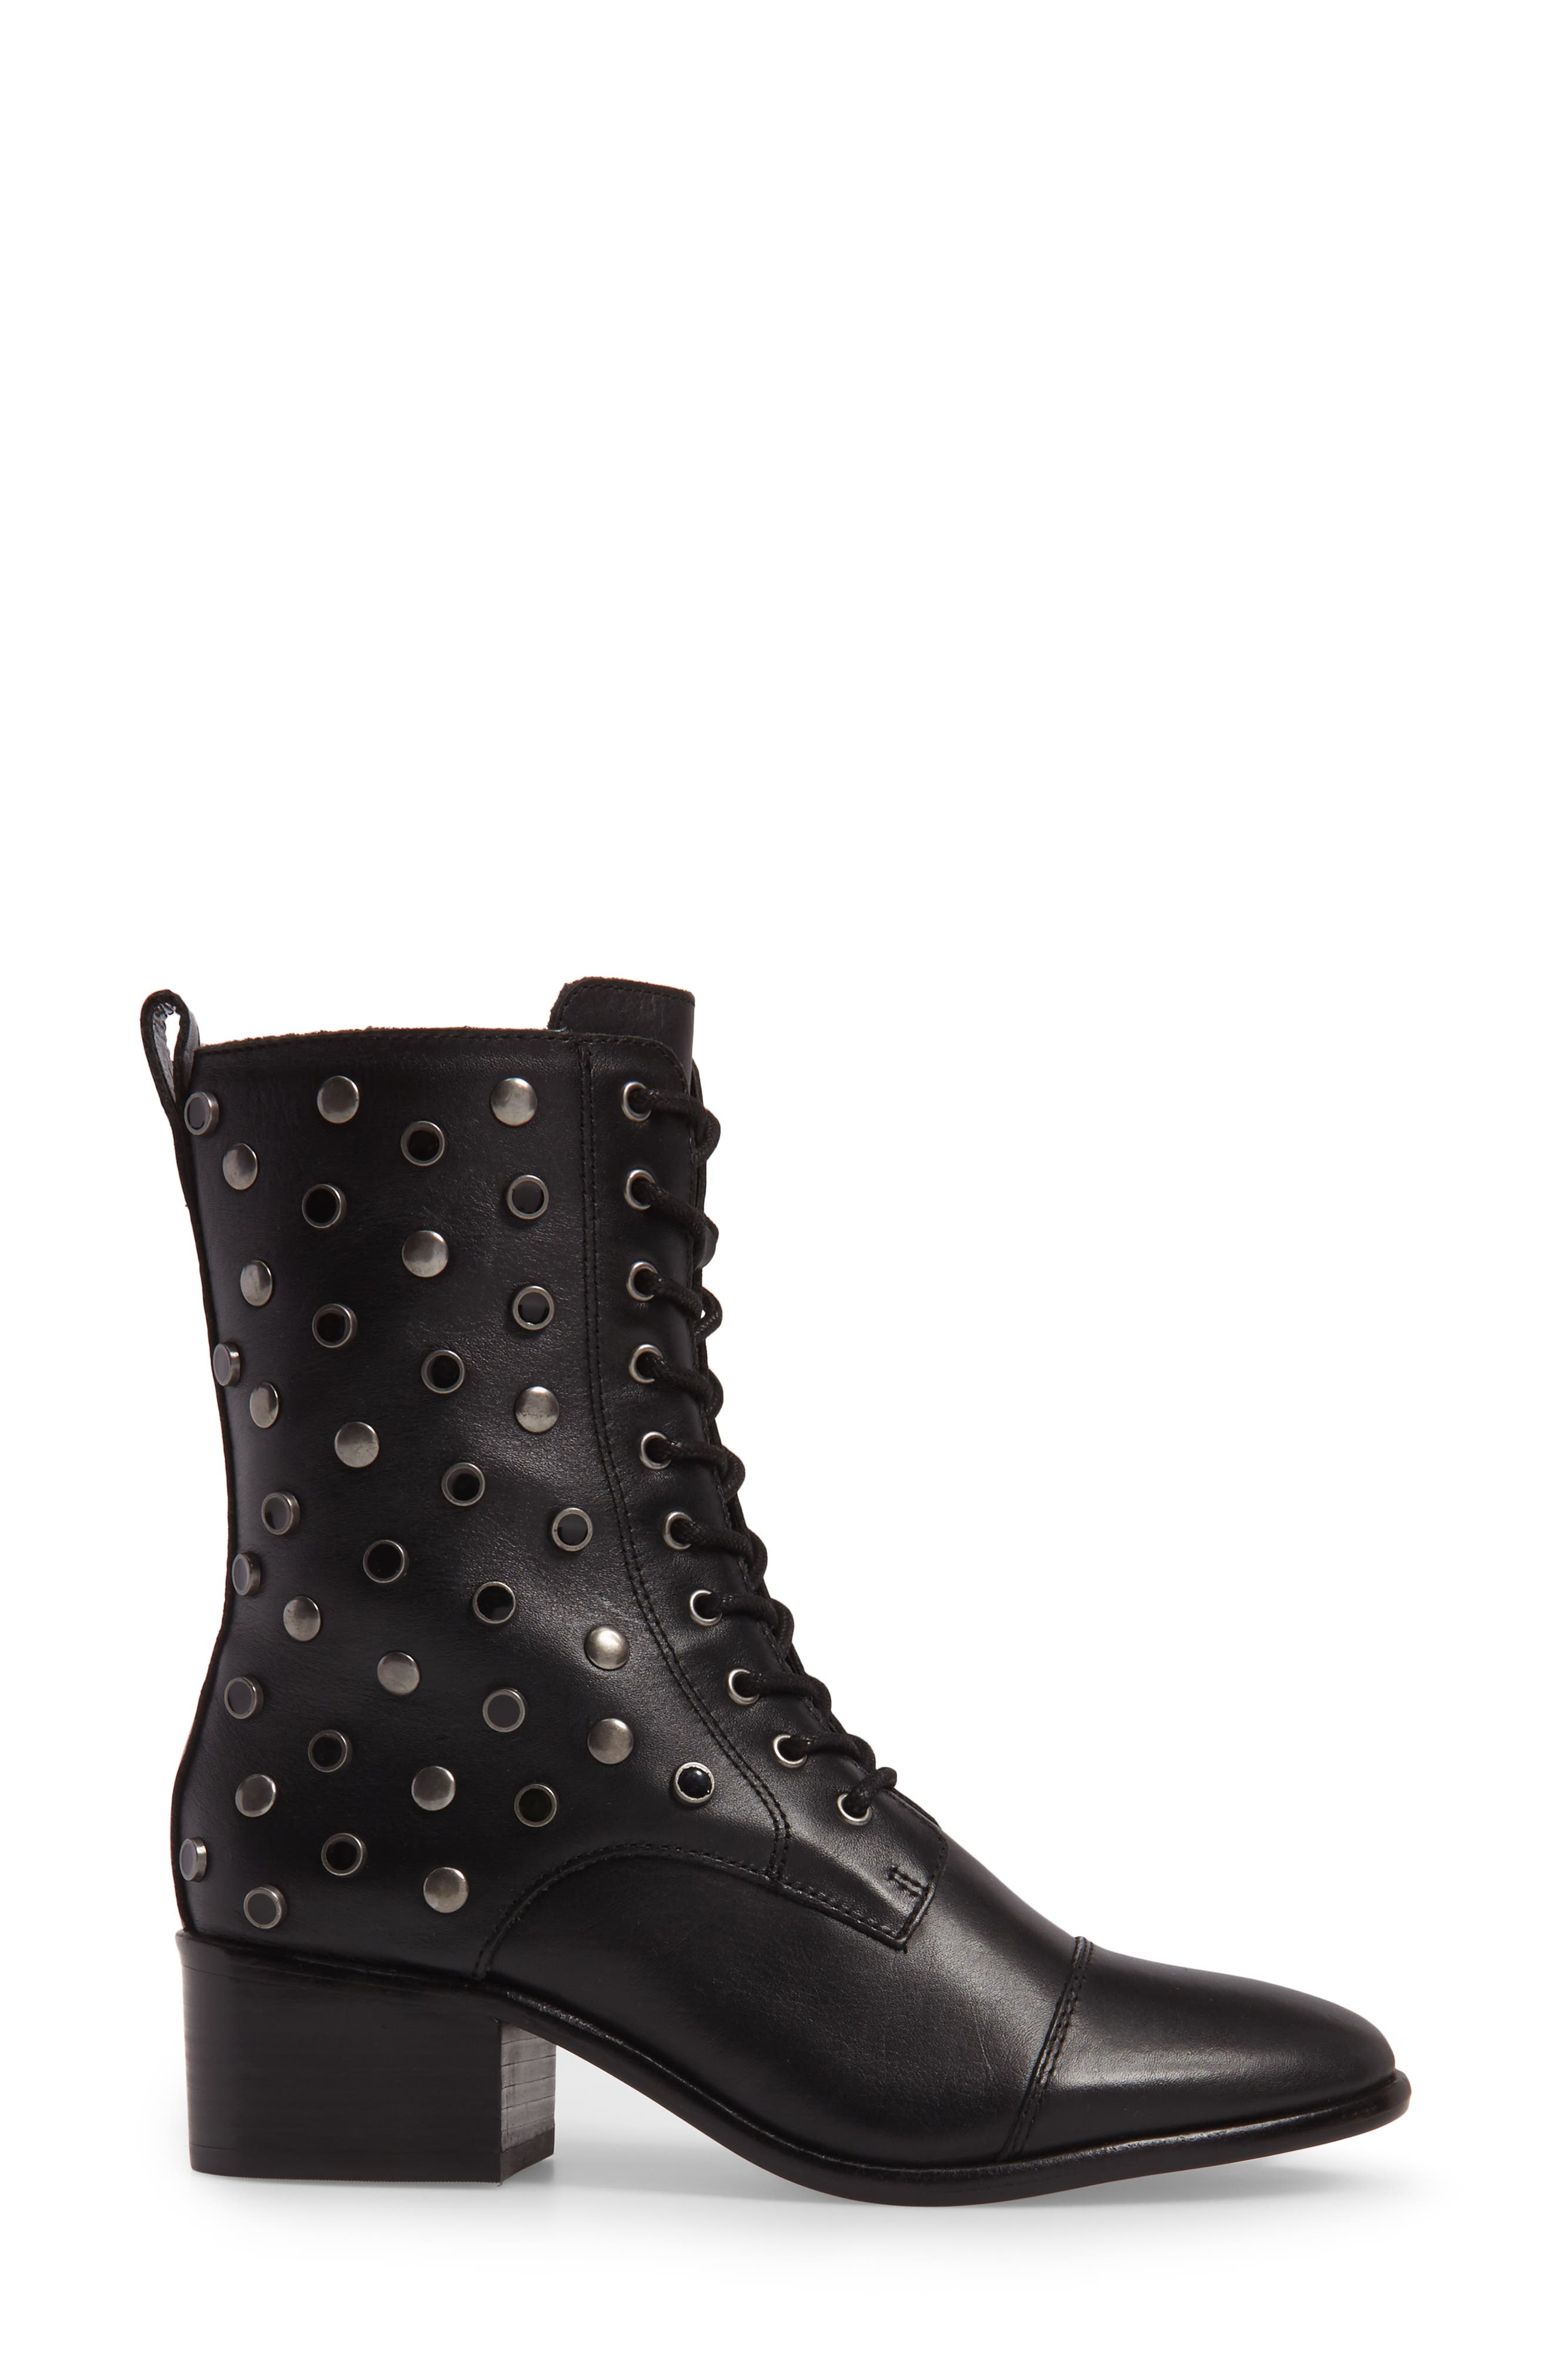 M4D3 Grazie Embellished Water Resistant Boot,                             Alternate thumbnail 3, color,                             Black Leather